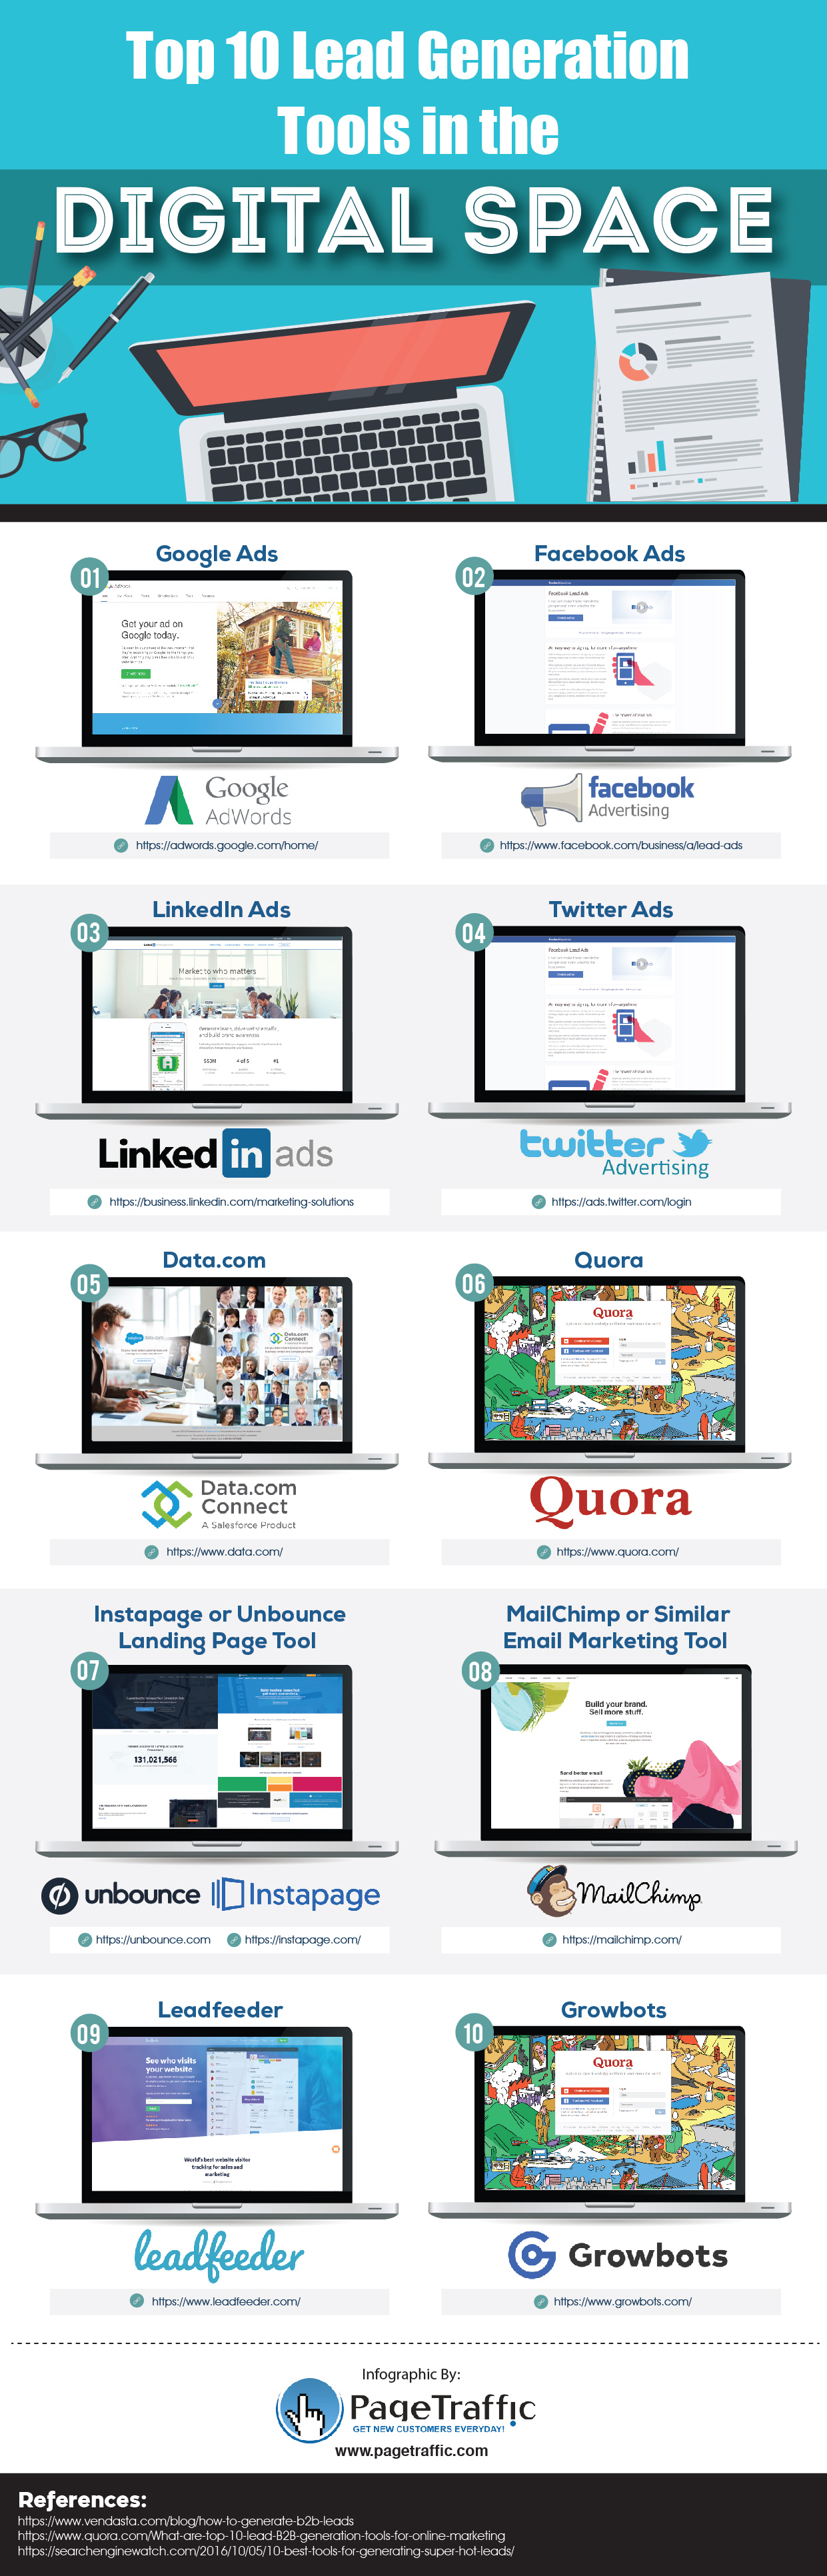 Top-10-Lead-Generation-Tools-in-Digital-image